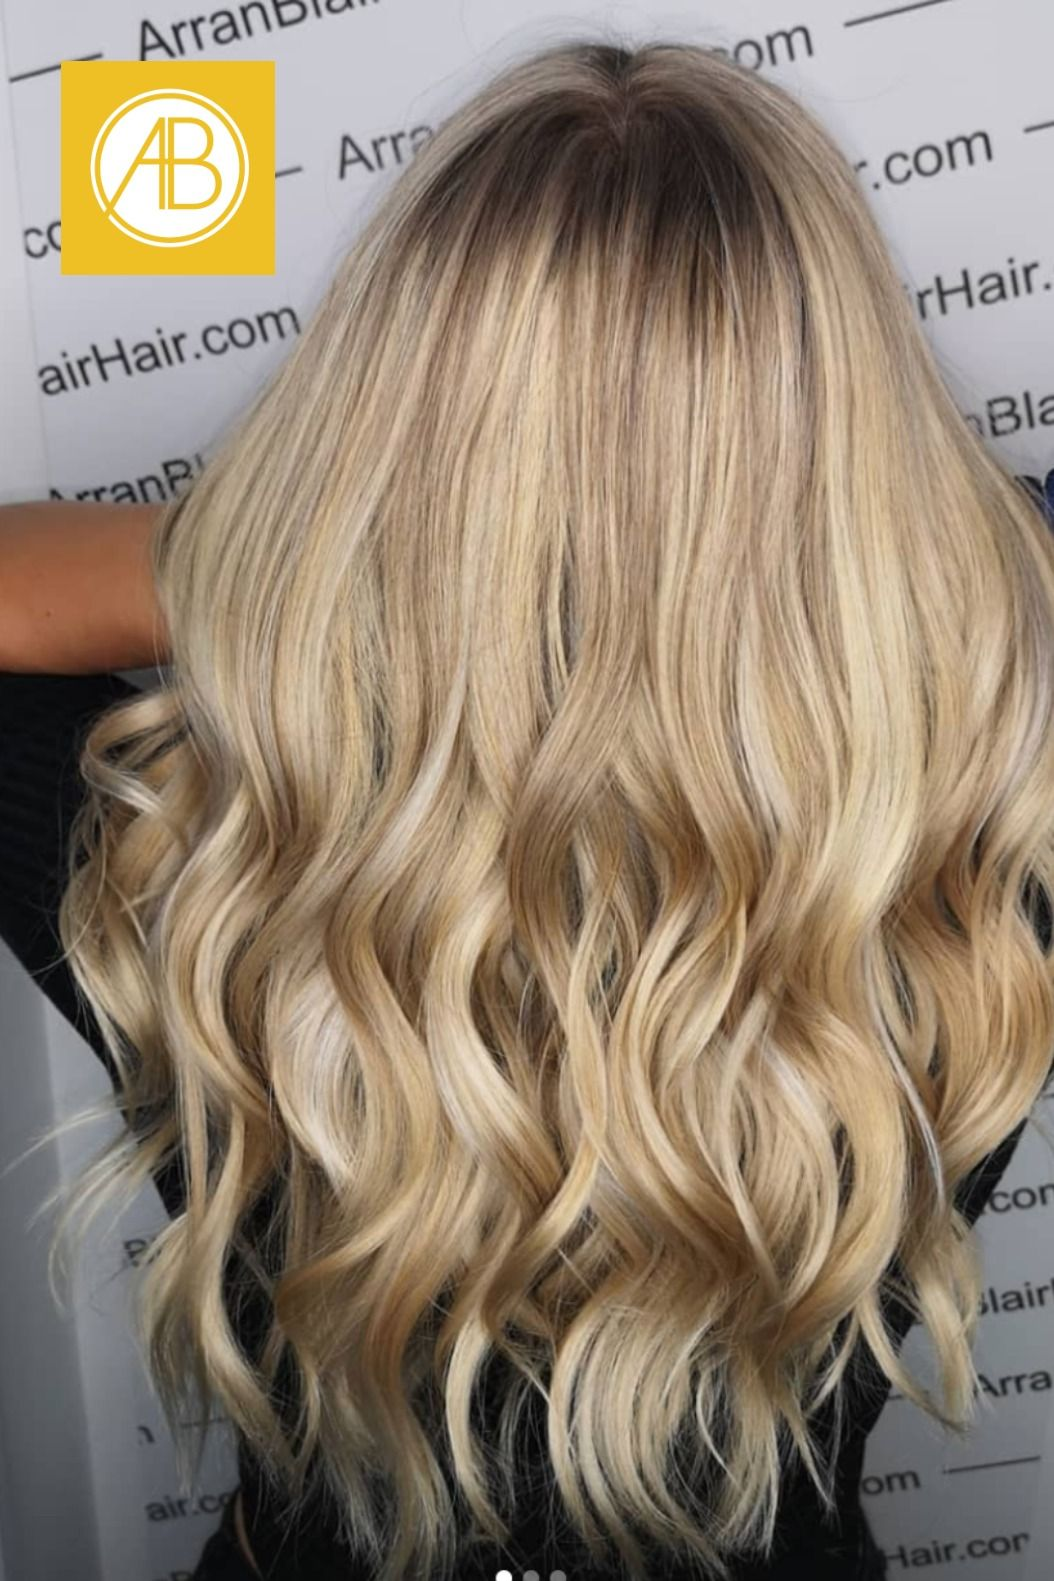 Check out the different tones in this highlighted hair